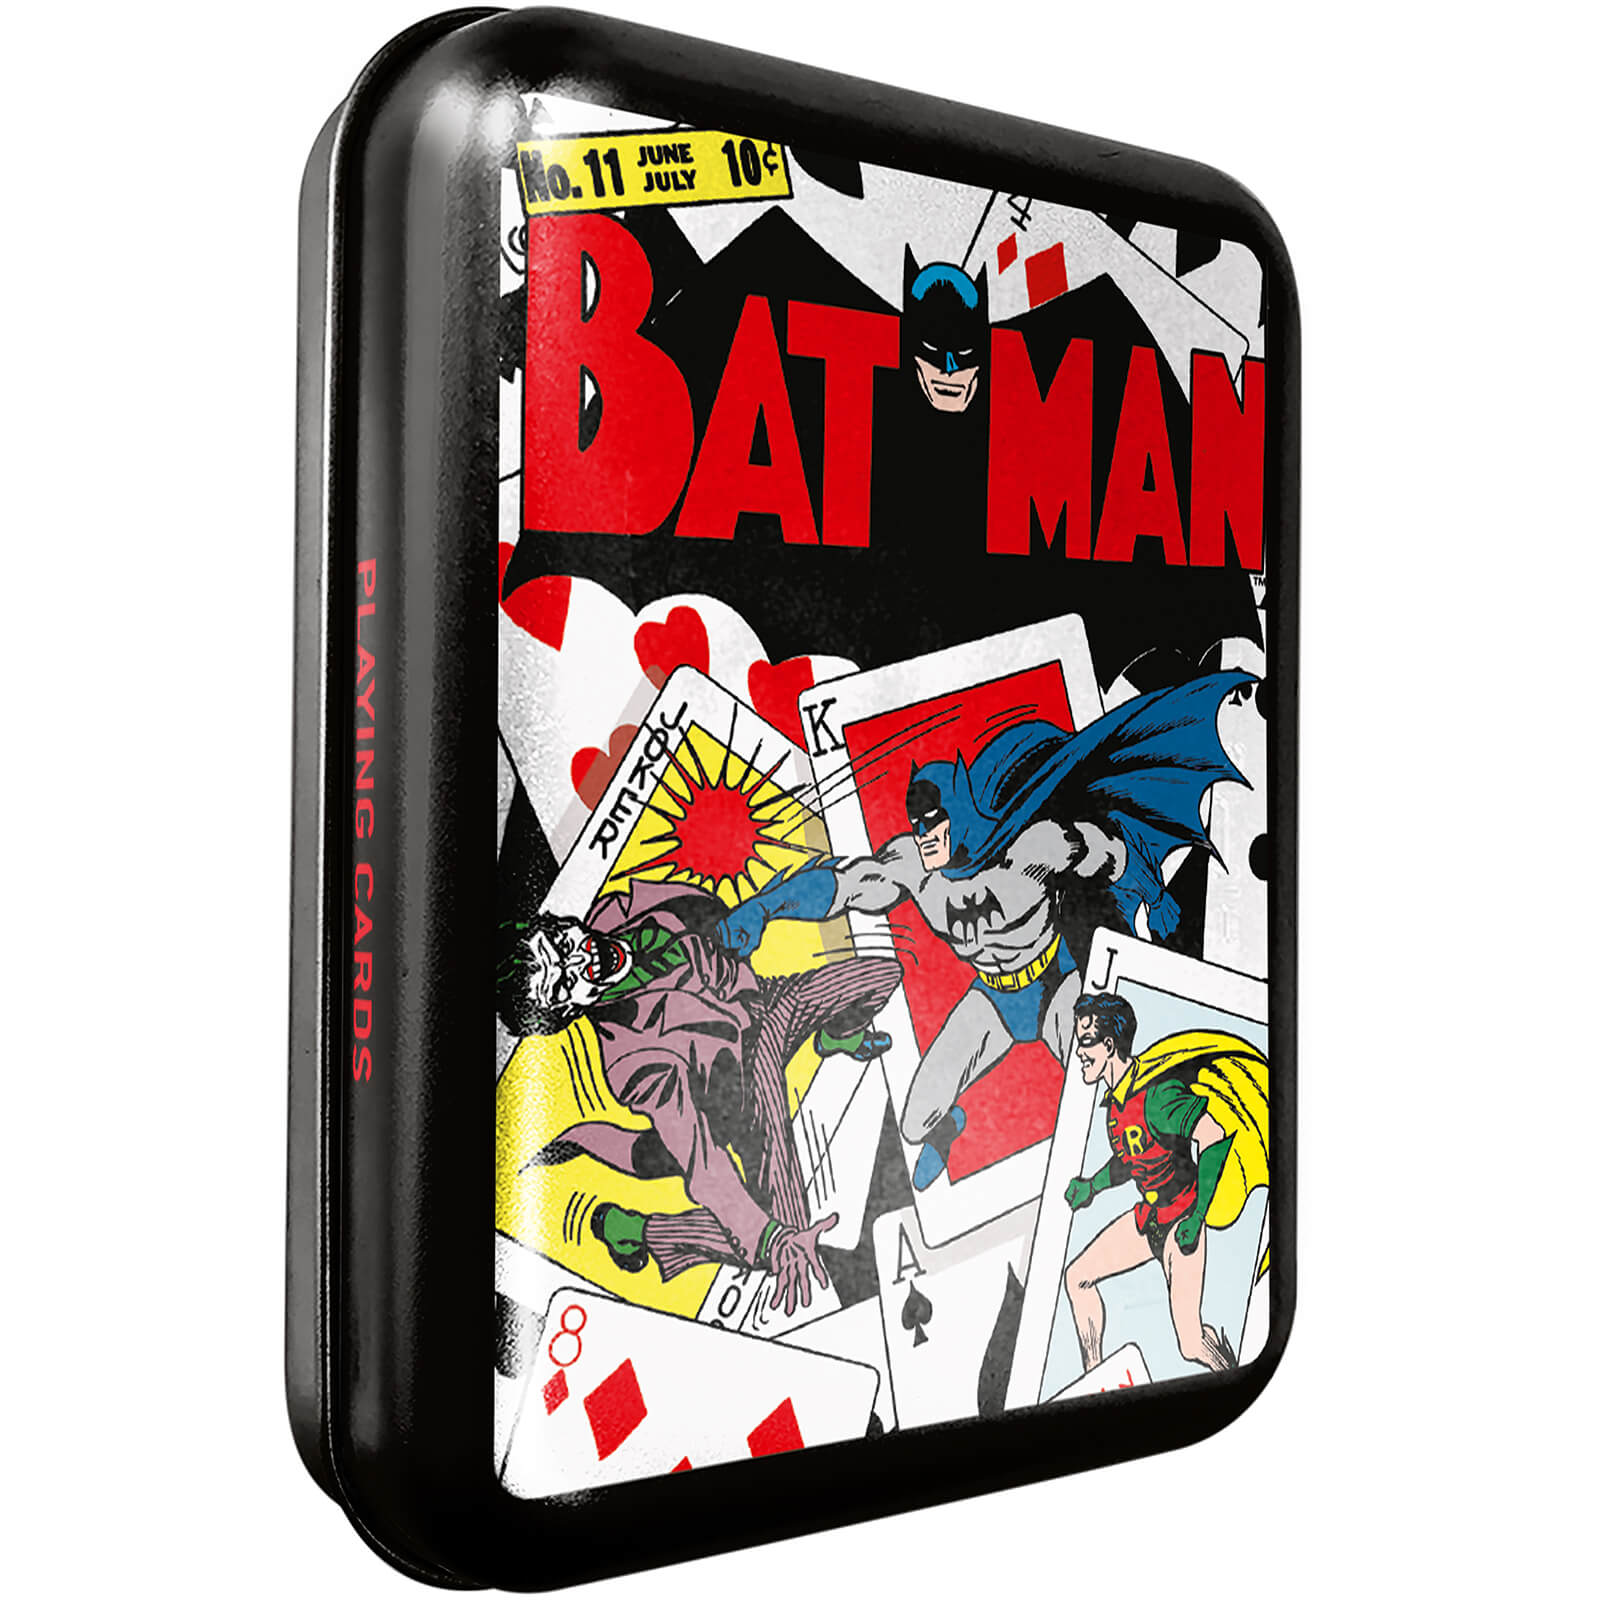 Image of DC Batman Collector Playing Cards & Tin in Black